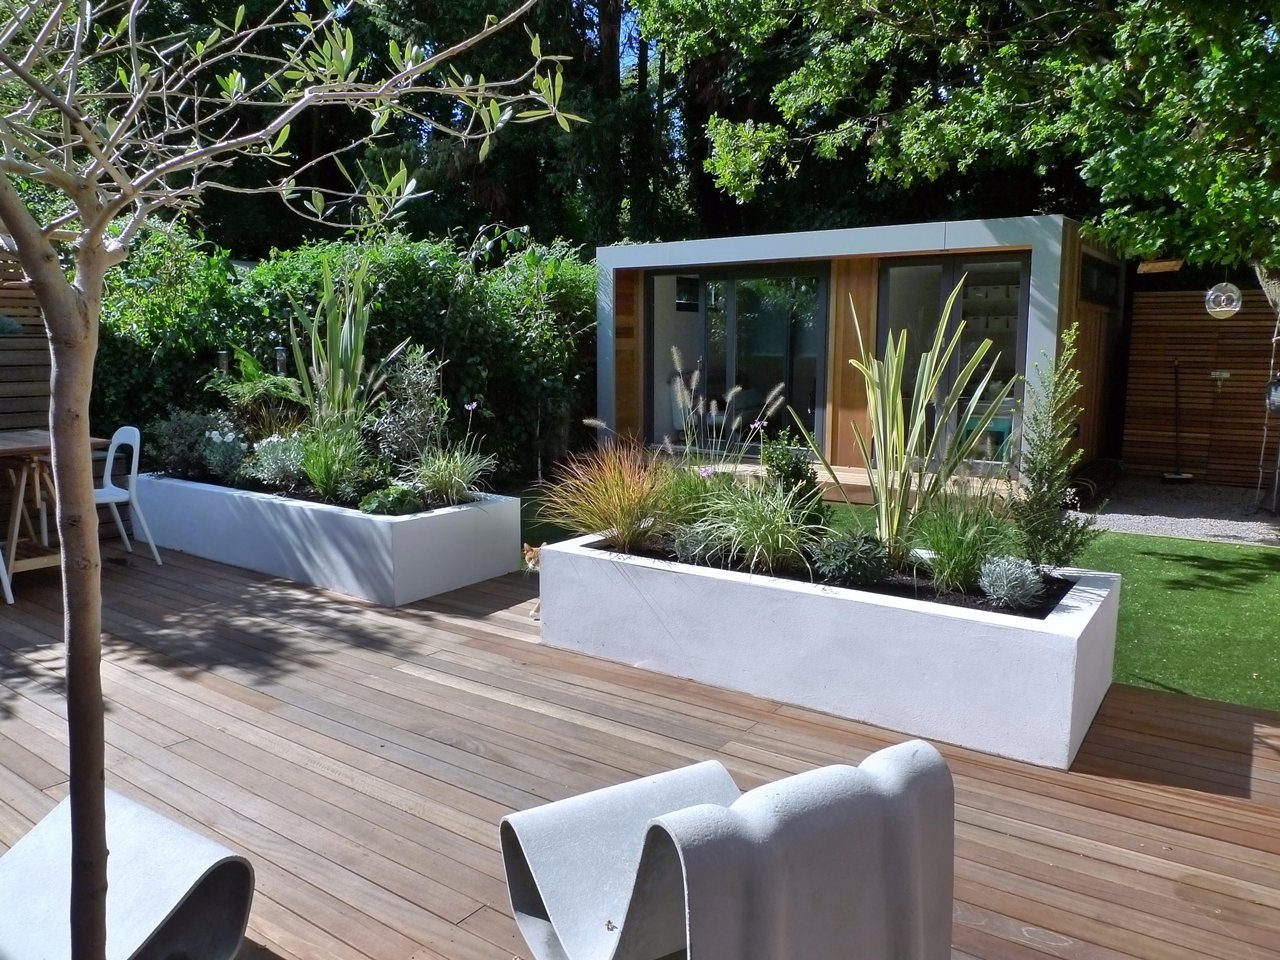 Contemporary garden design london modern home exteriors for Images of garden designs